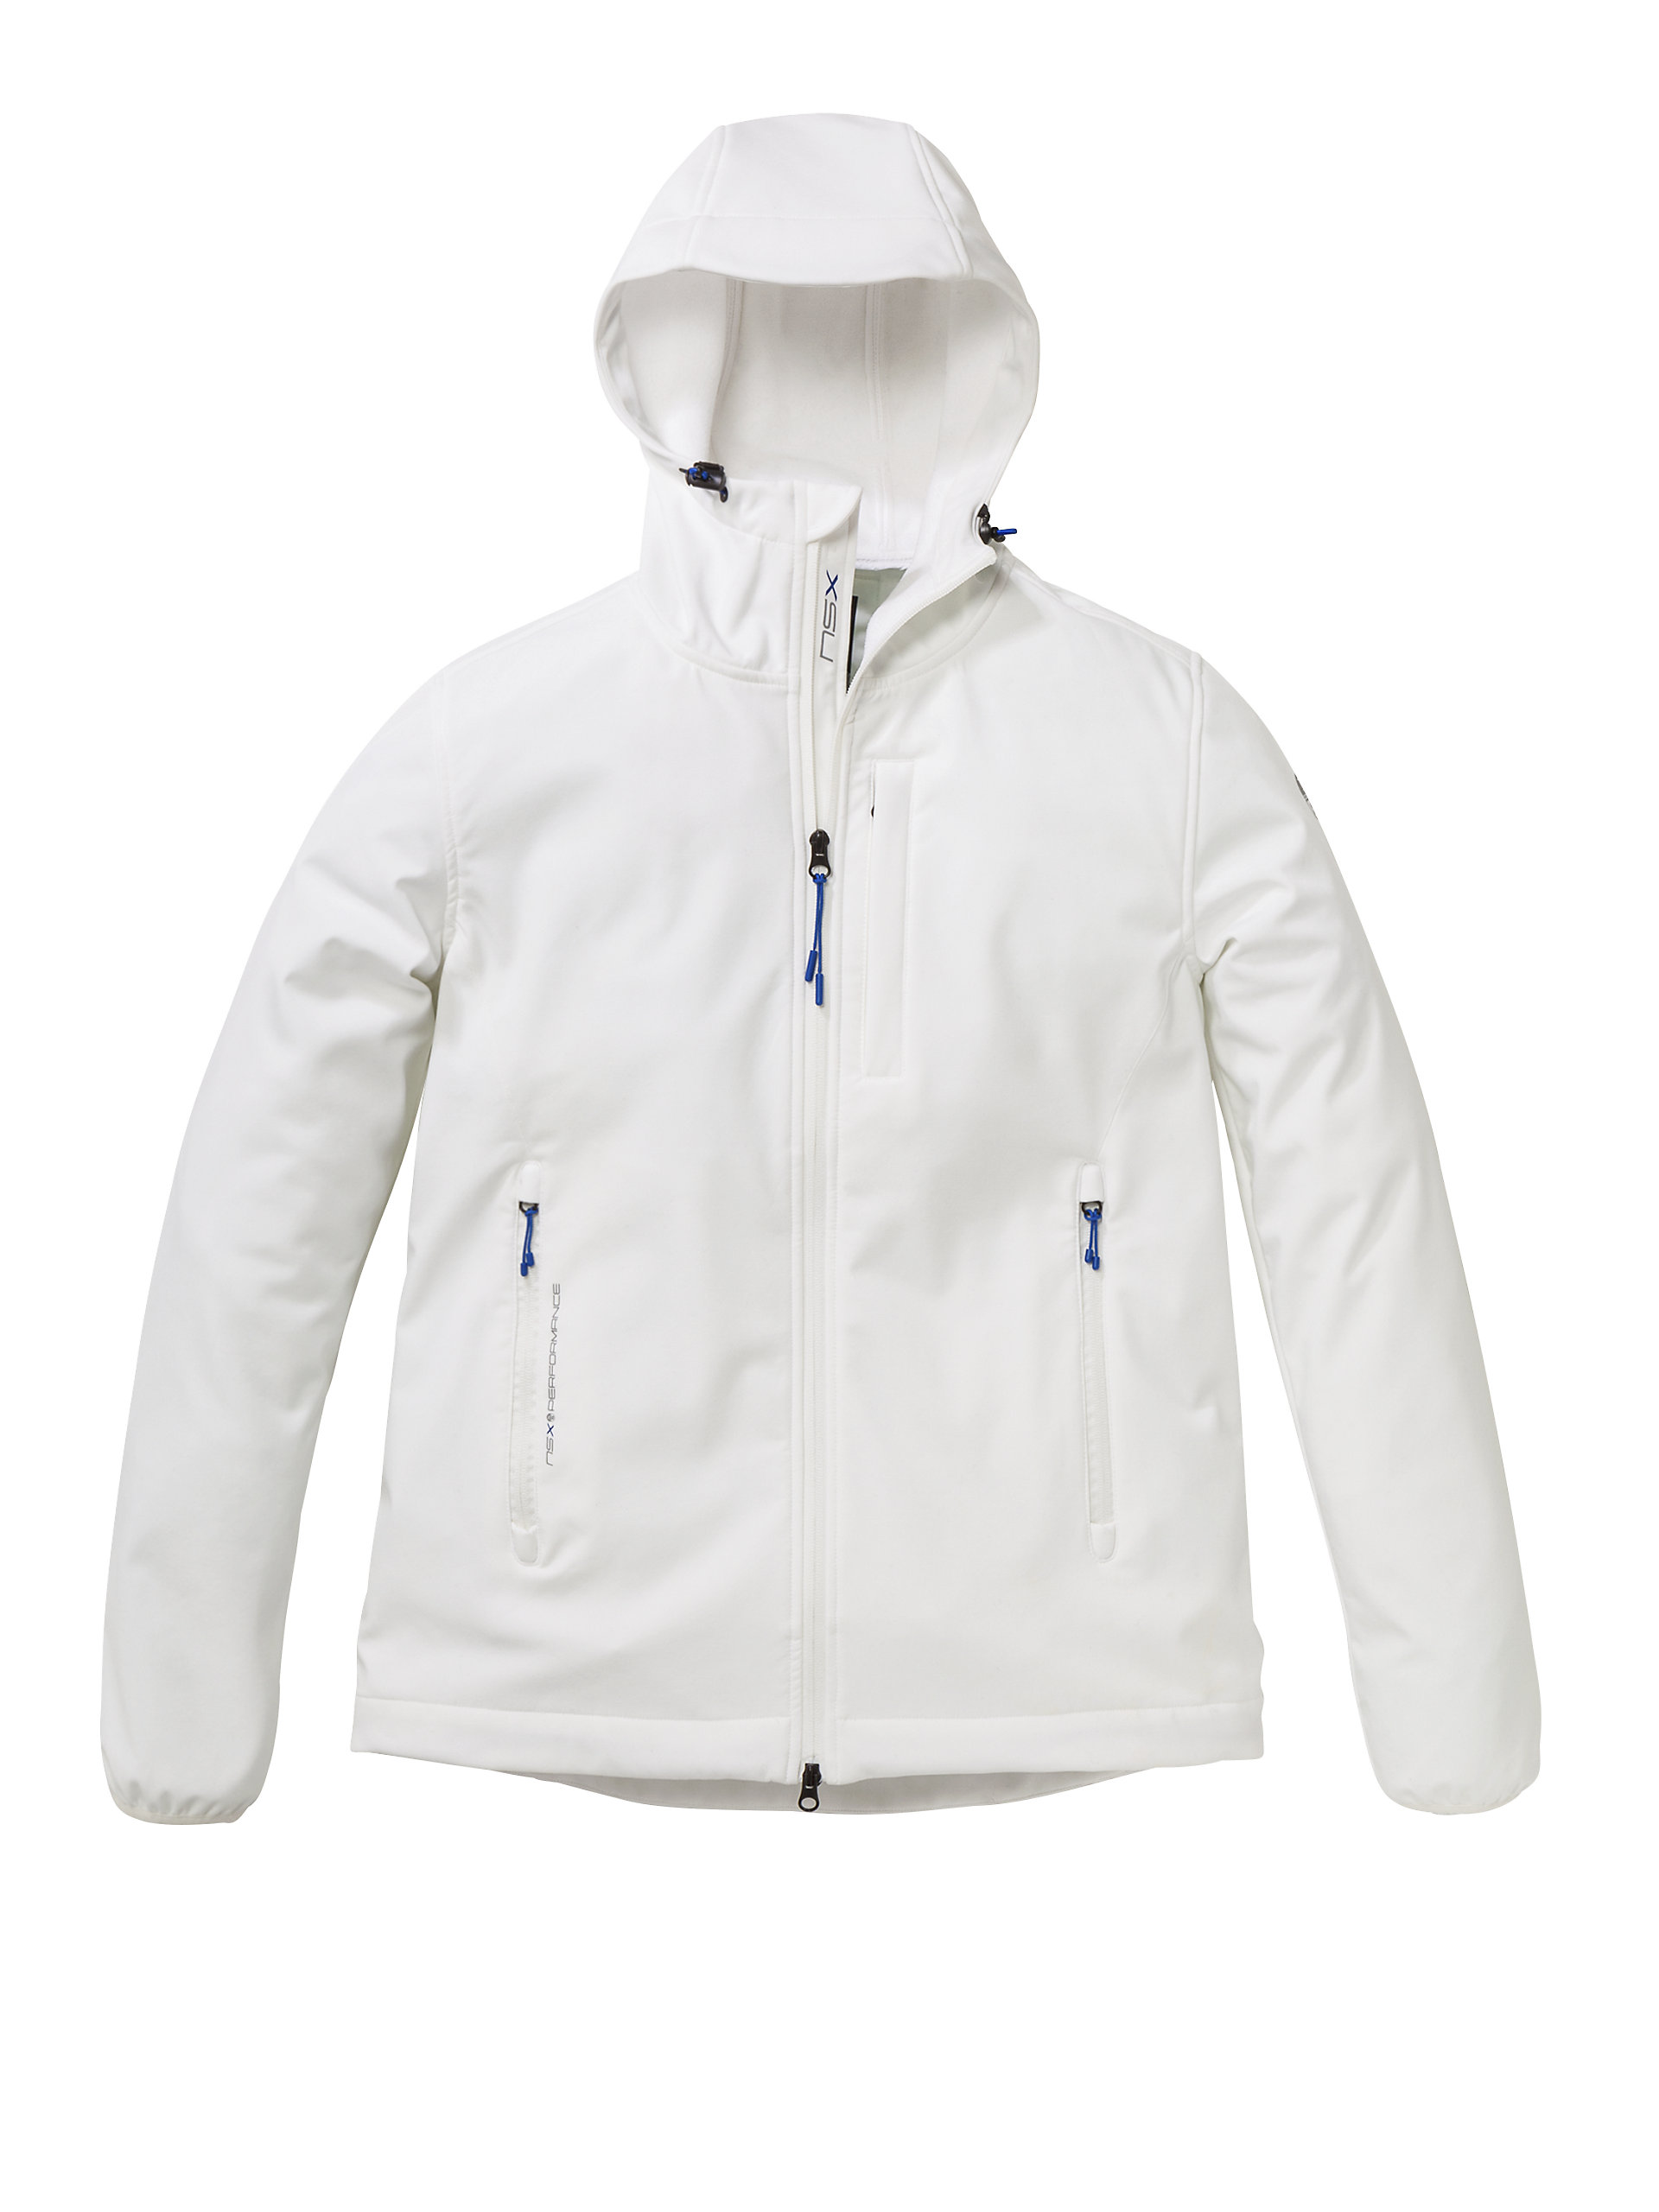 NORTH SAILS HOMMES Storm Cheater Veste À Capuche Softshell Vent Et  Imperméable - EUR 199 1f83a084931